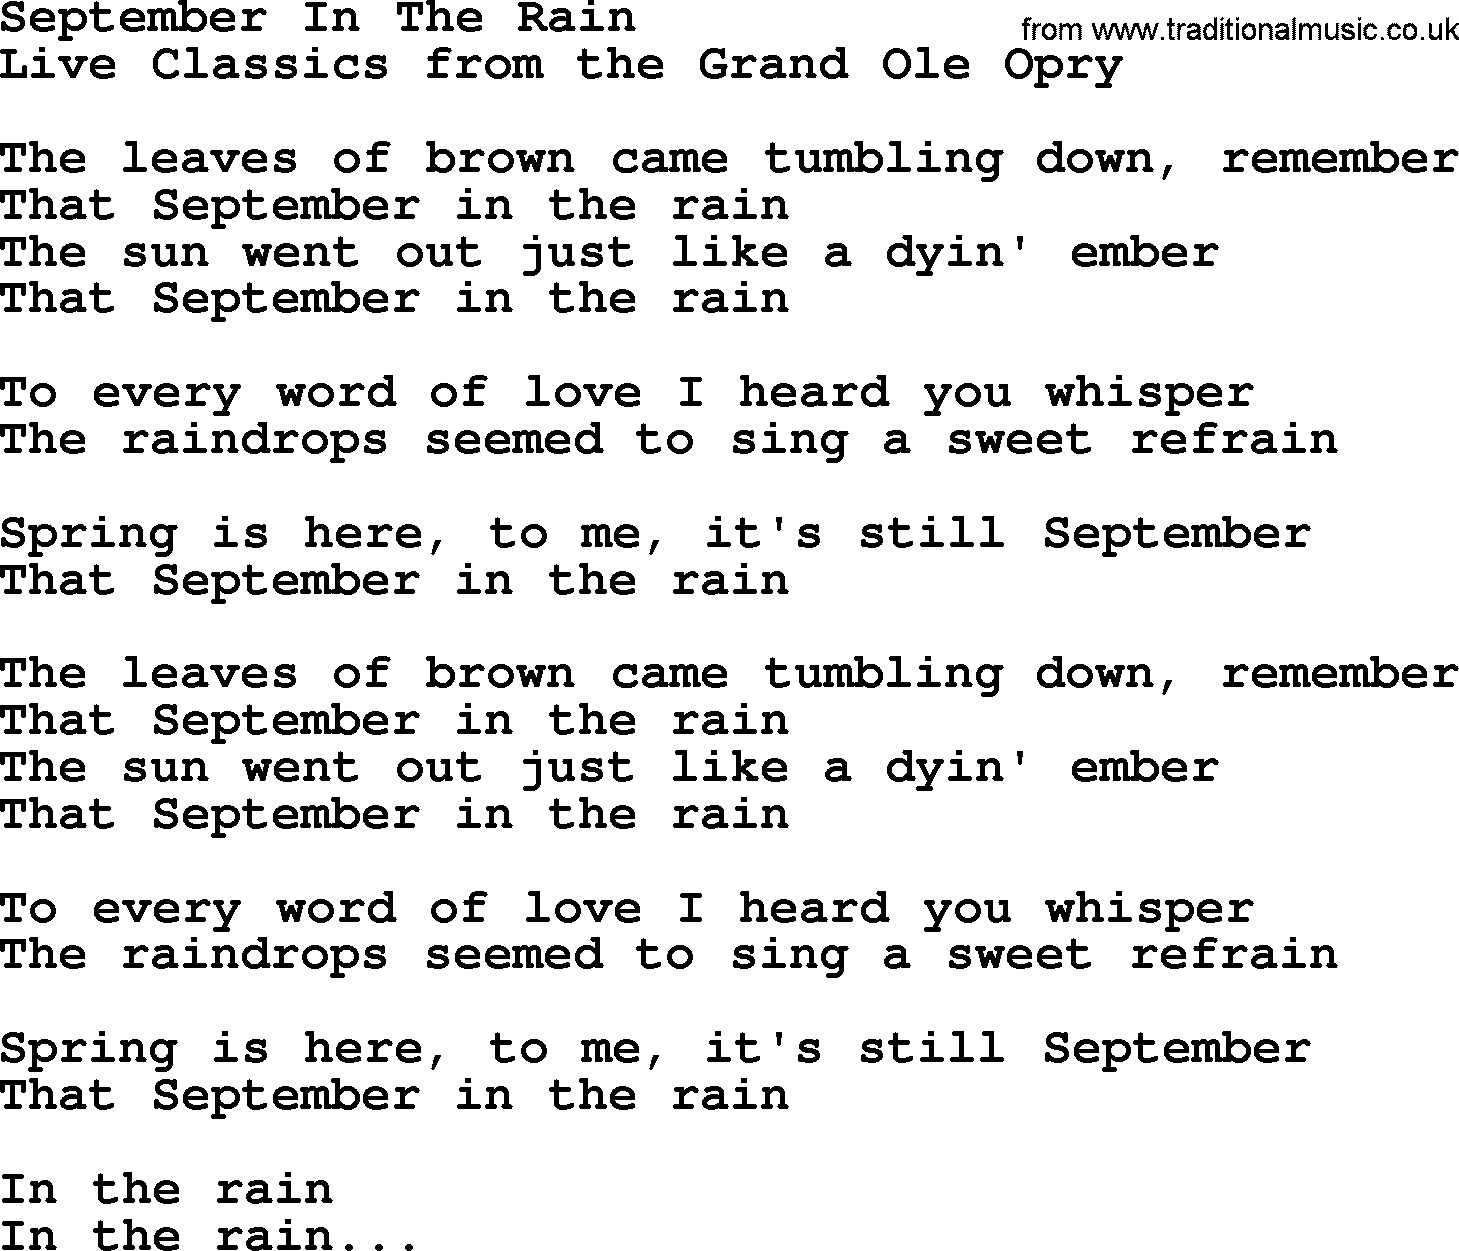 September in the rain by marty robbins lyrics marty robbins song september in the rain lyrics hexwebz Image collections